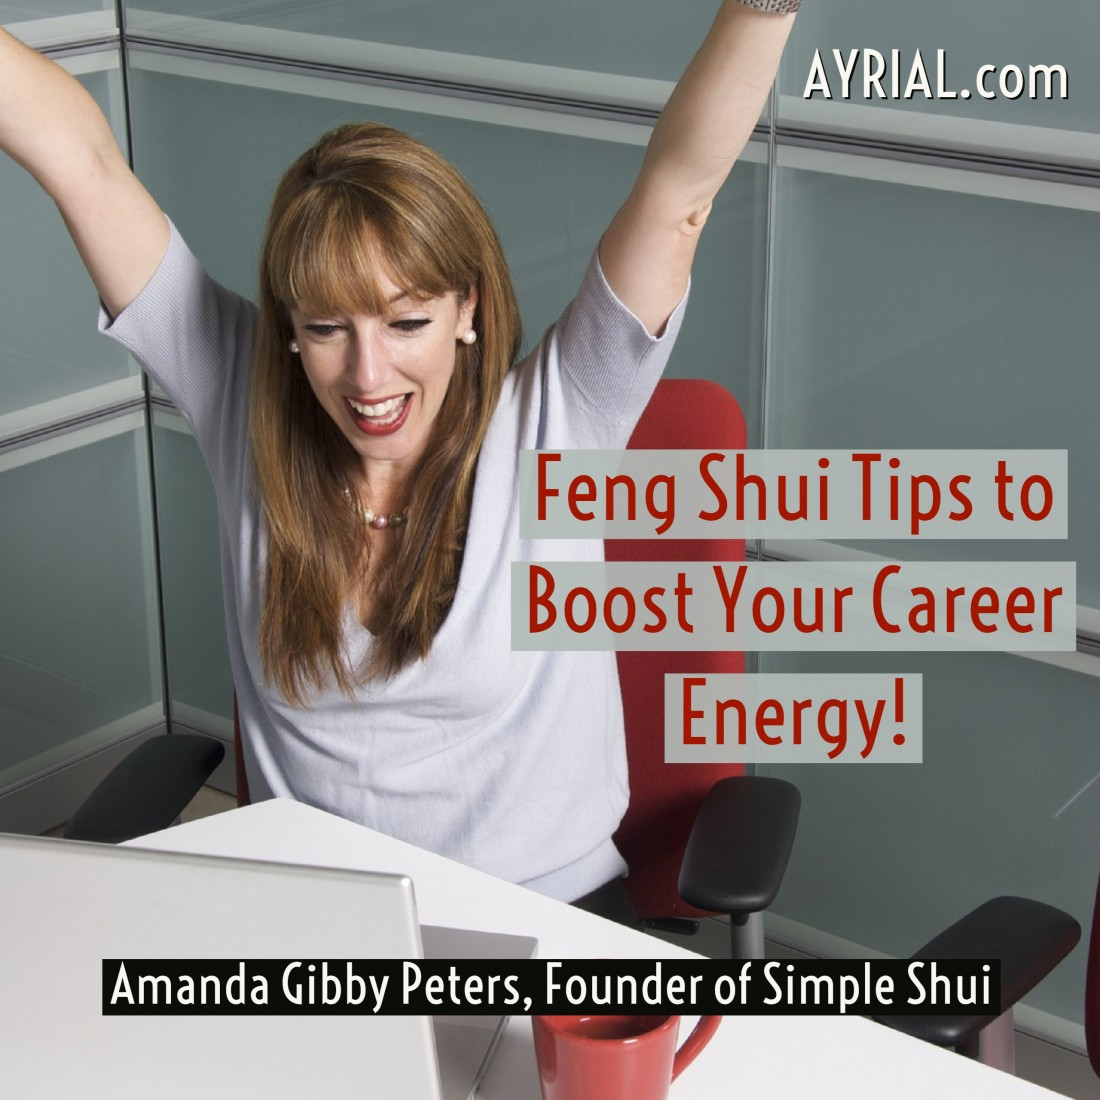 Amanda Gibby Peters -Simple Shui - Feng Shui Tips to boost career energy